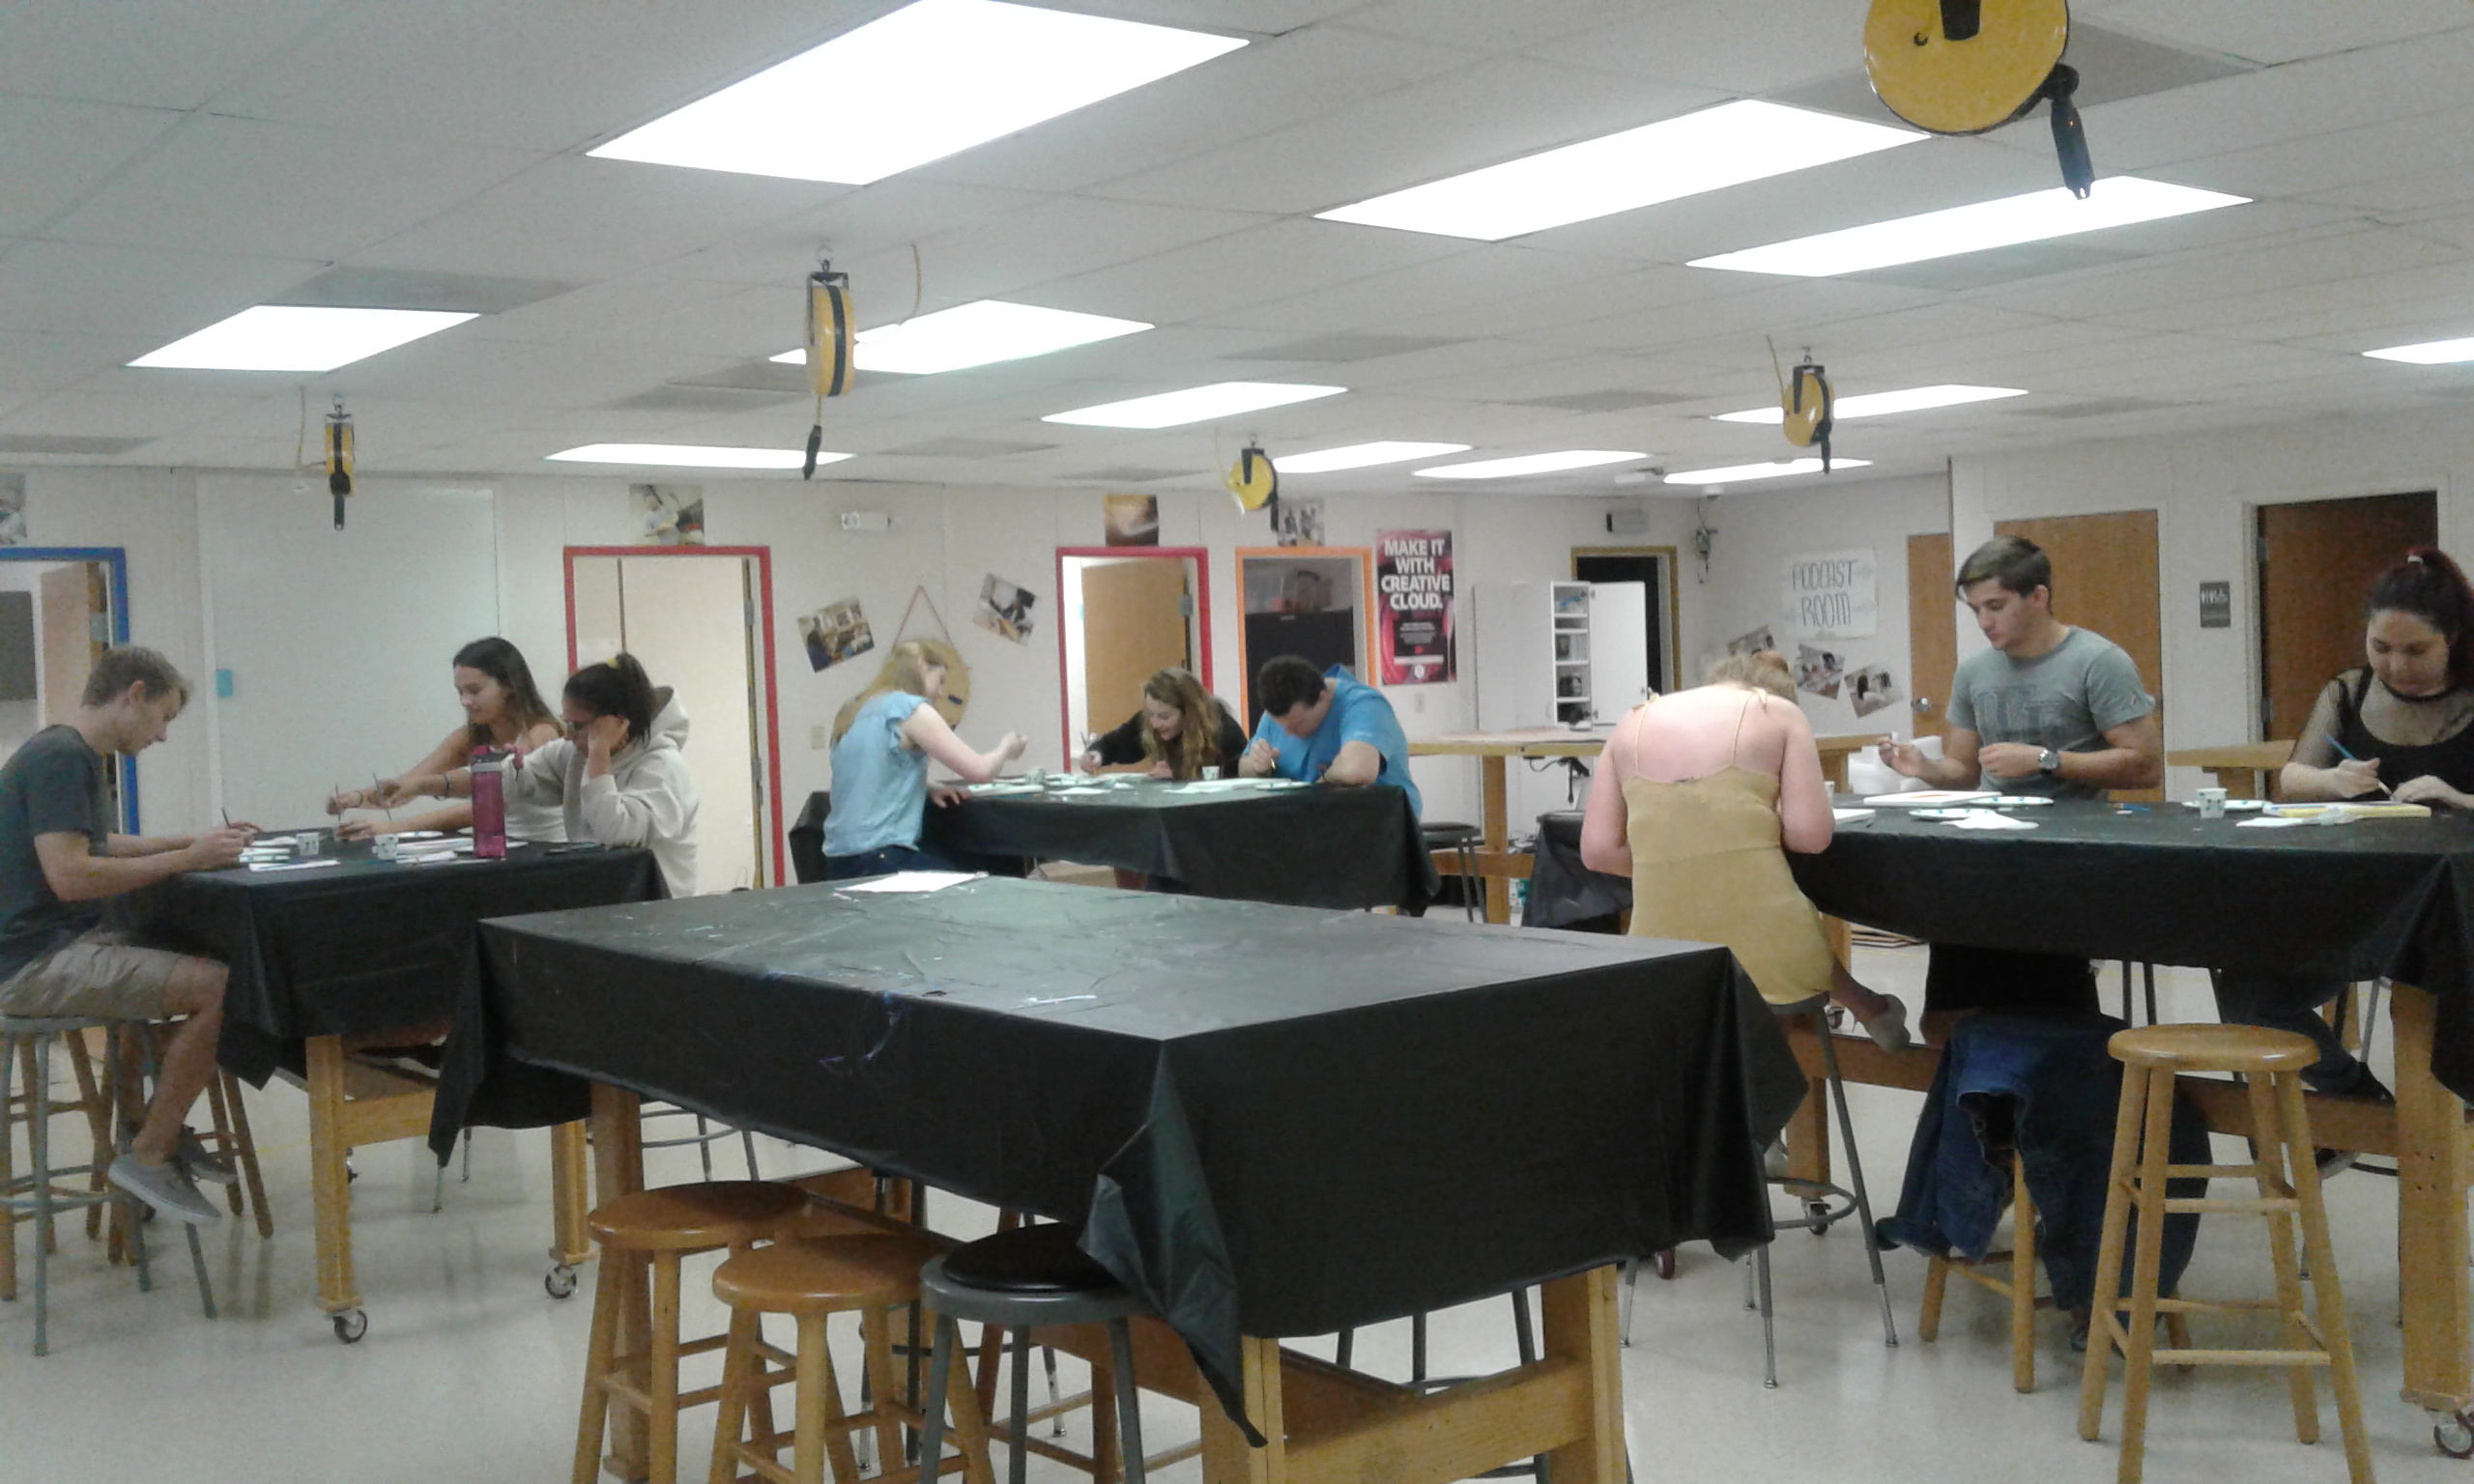 Students at art immersion activity